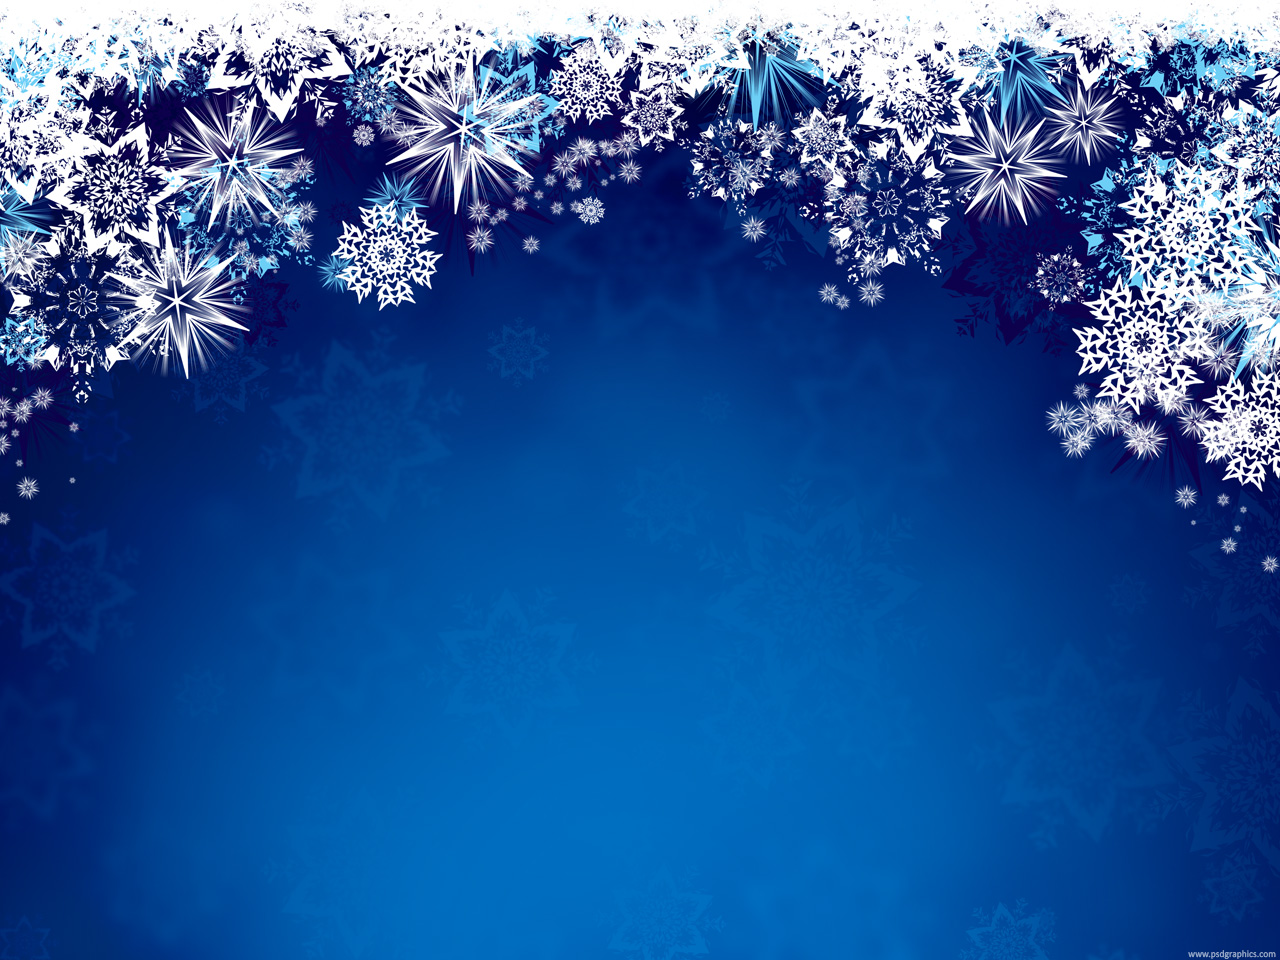 Winter clipart backdrop. Free cliparts background download